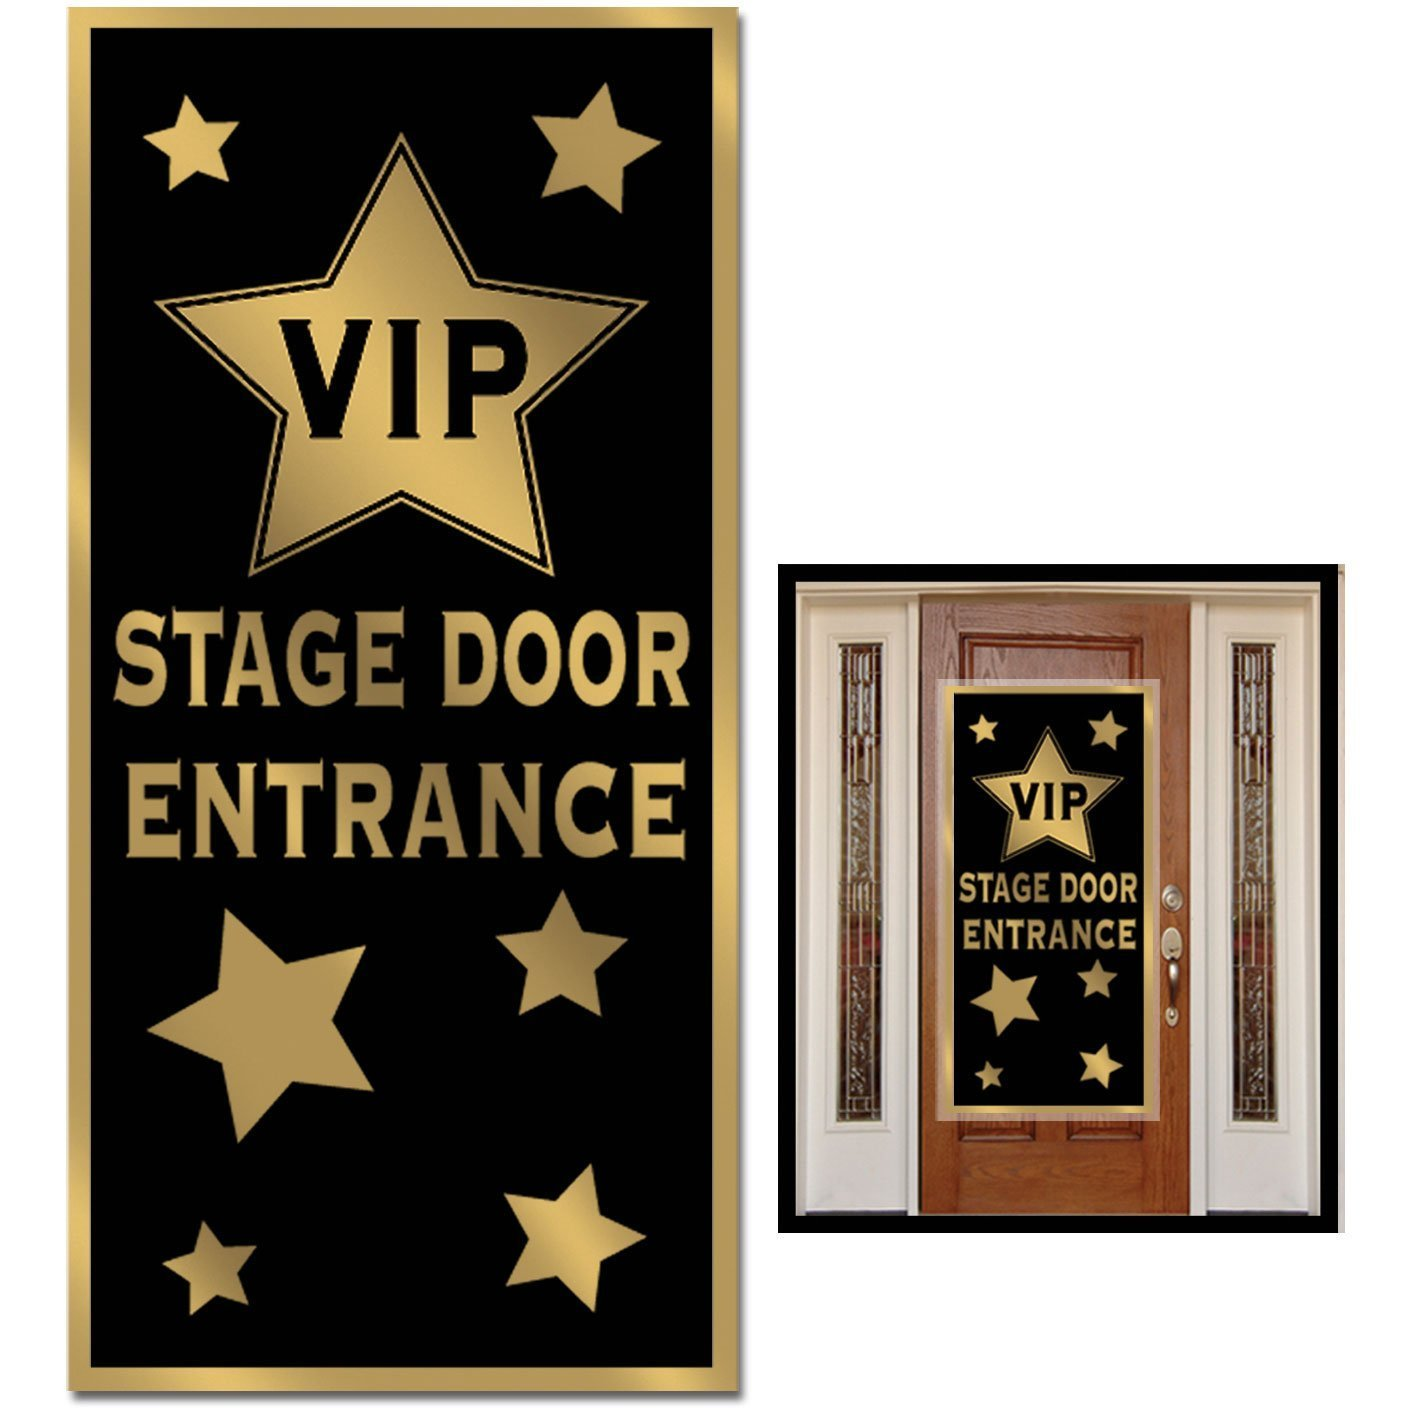 Amazon.com VIP Stage Door Entrance Door Cover Party Accessory (1 count) (1/Pkg) Kitchen \u0026 Dining  sc 1 st  Amazon.com & Amazon.com: VIP Stage Door Entrance Door Cover Party Accessory (1 ...